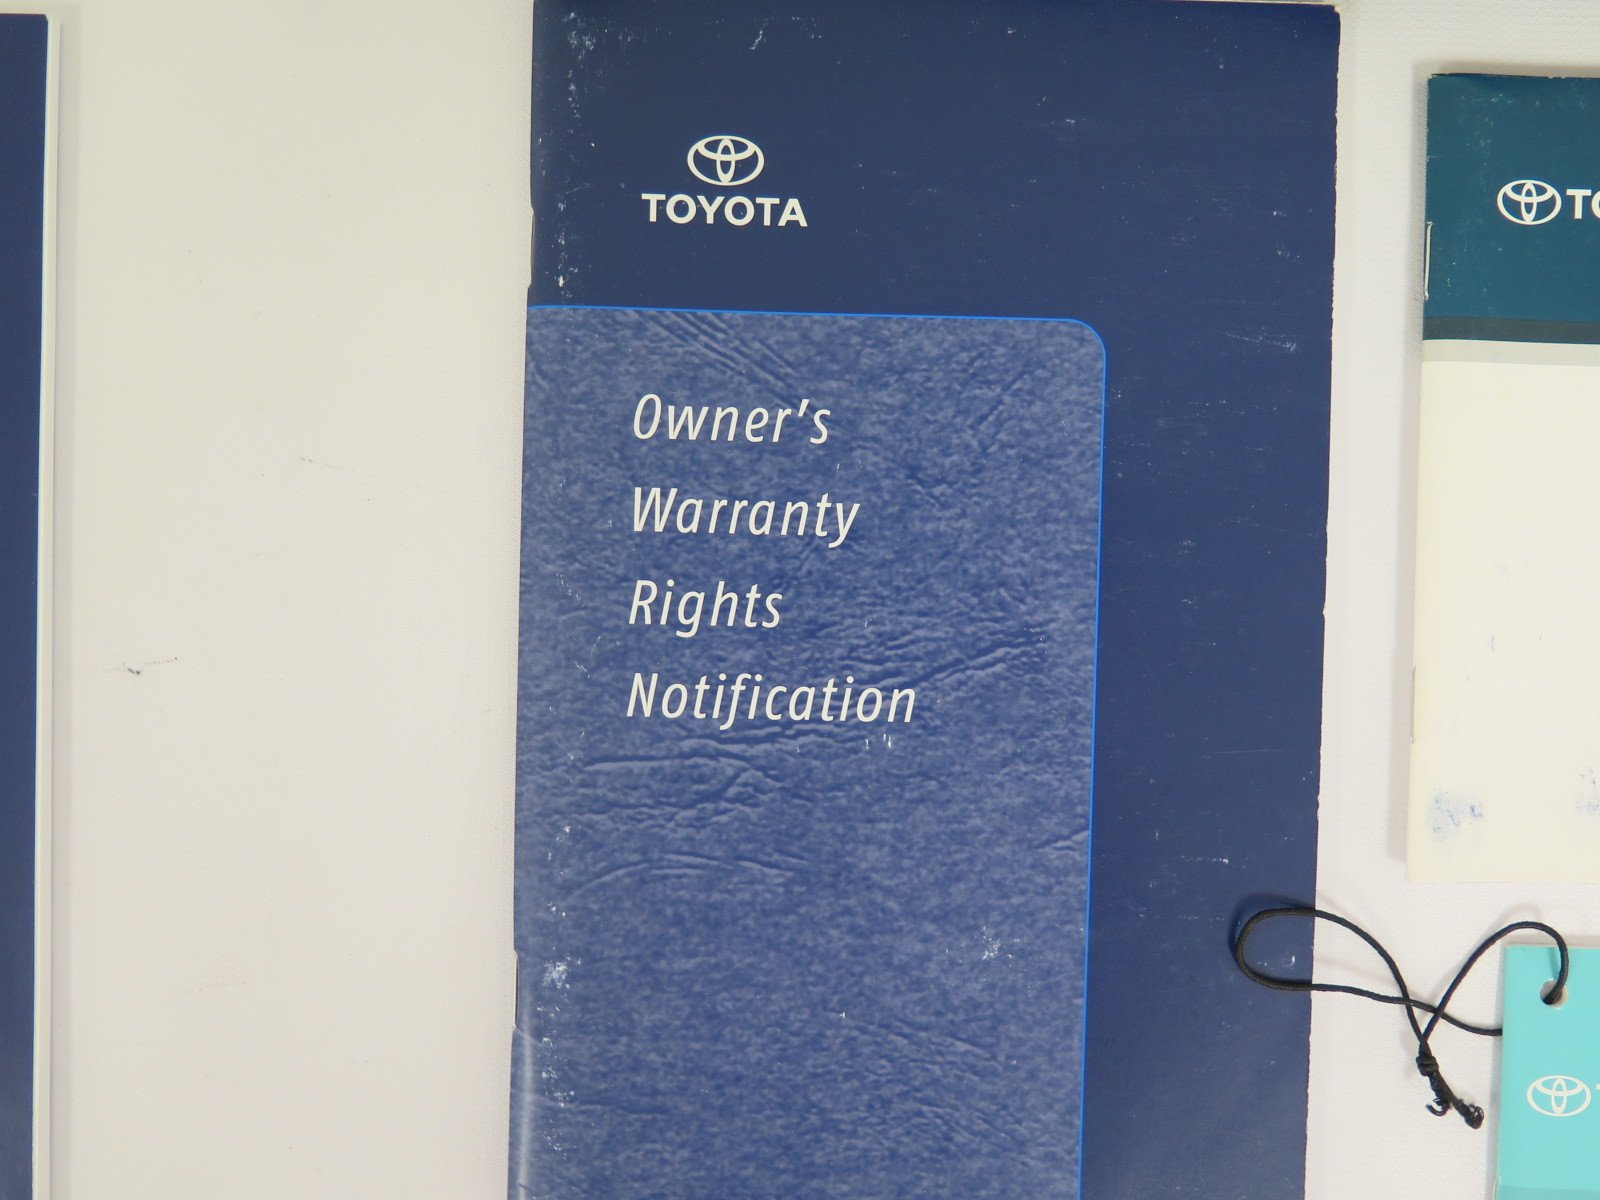 2008 toyota 4 runner owners manual guide book toyota automotive rh amazon com 2006 toyota 4runner owners manual online 1986 Toyota Truck 4x4 Interior